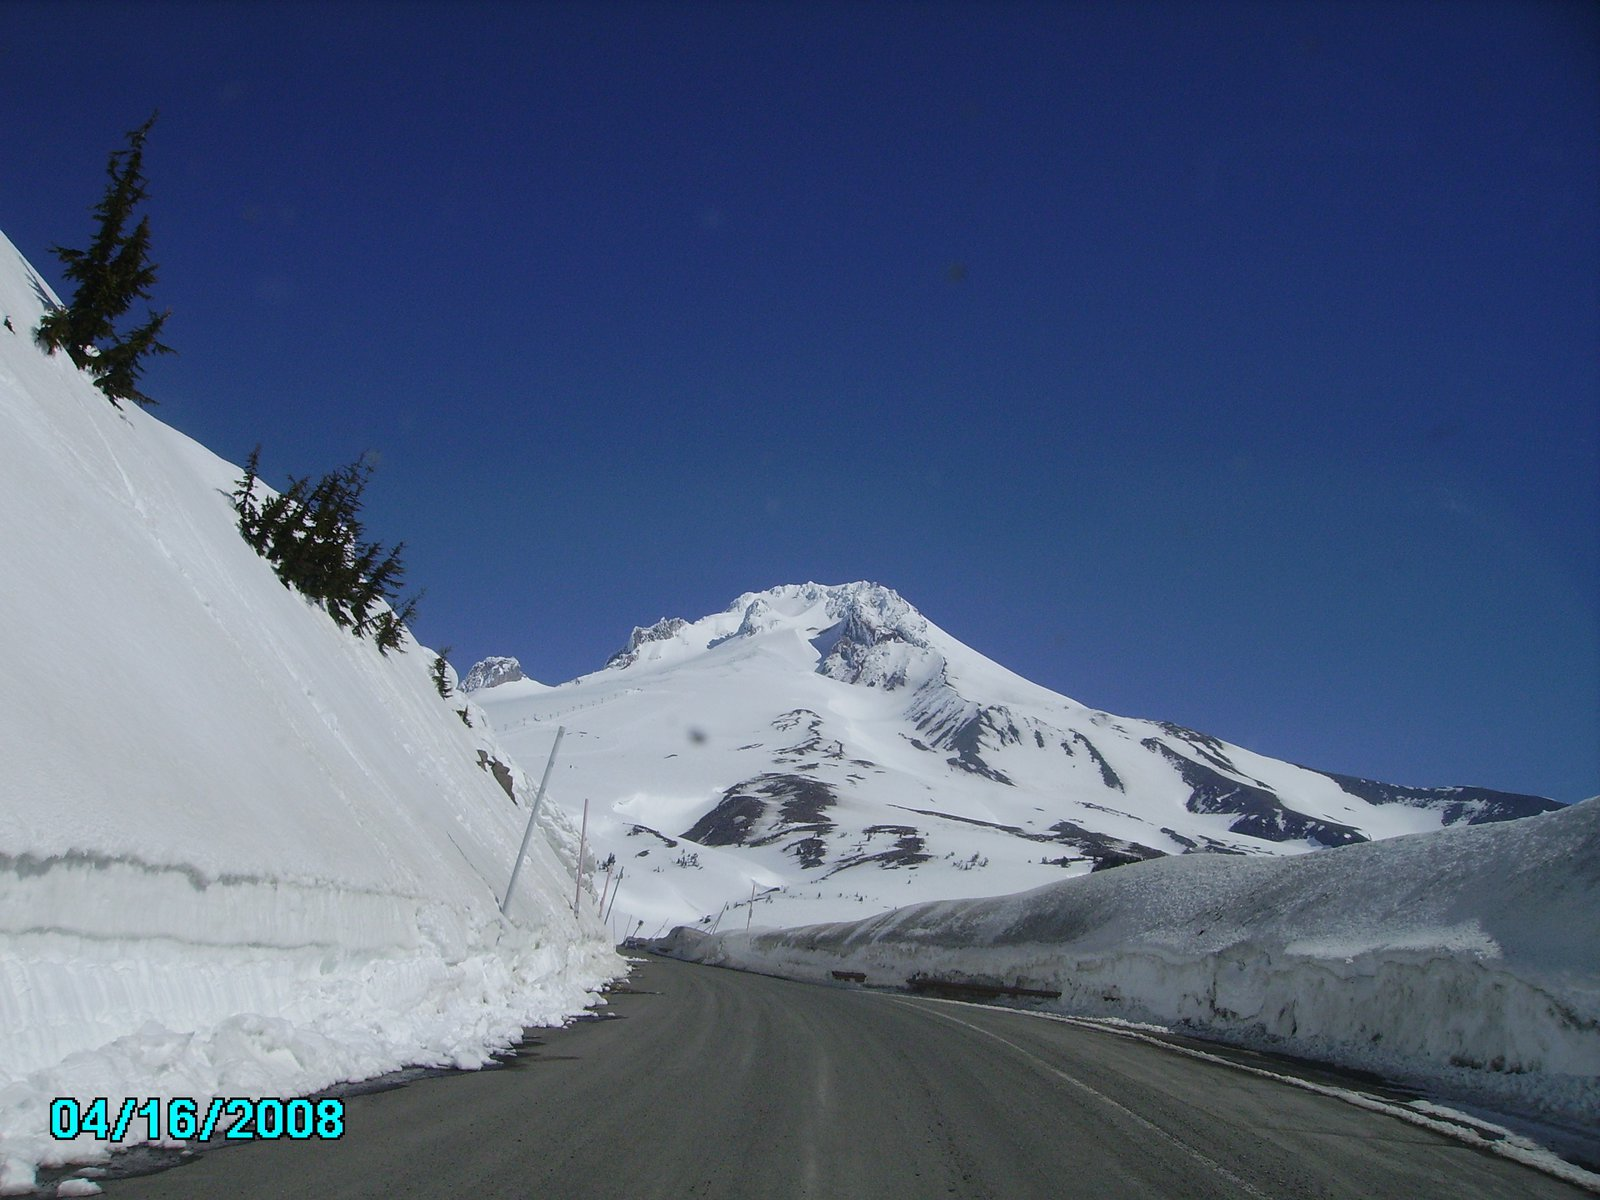 Hood from the road headed to timberline